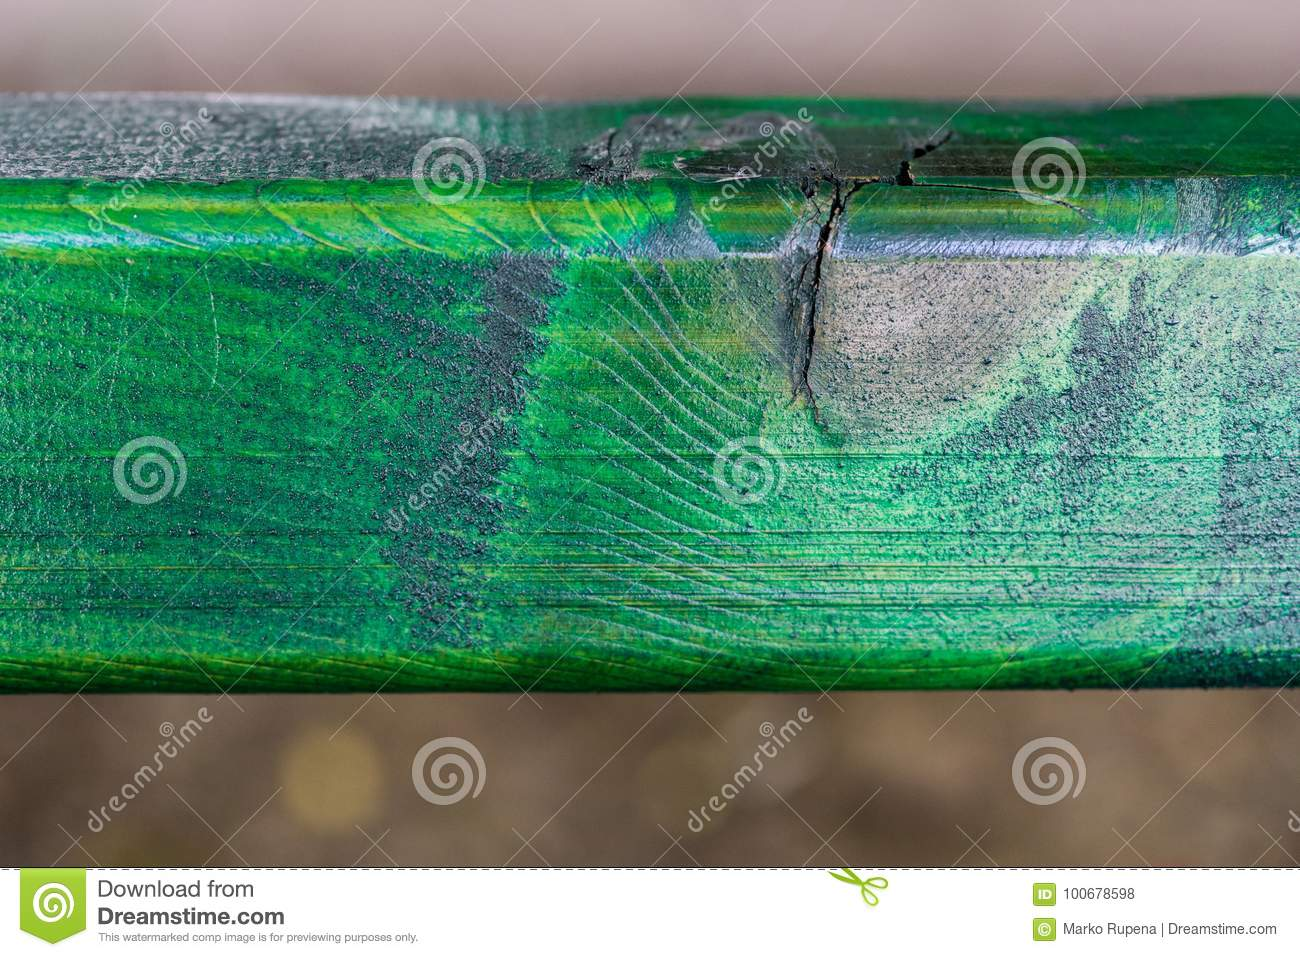 Texture of bench painted in green color